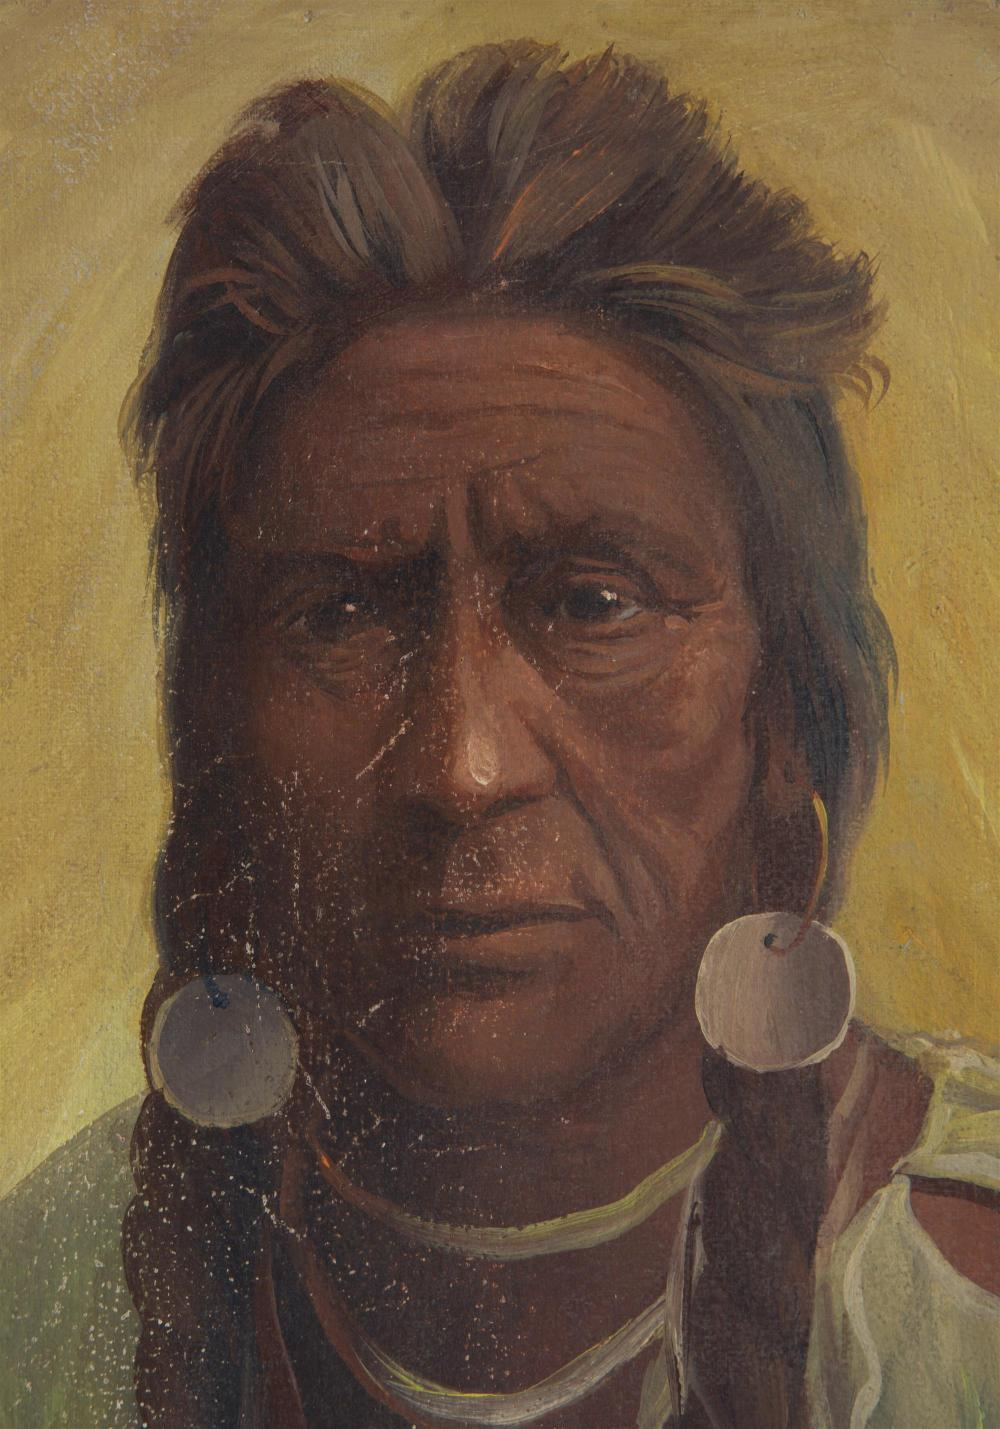 Joseph Henry Sharp, (1859-1953 Pasadena, CA), Portrait of a Sioux Indian, 1904, Oil on canvas, 10